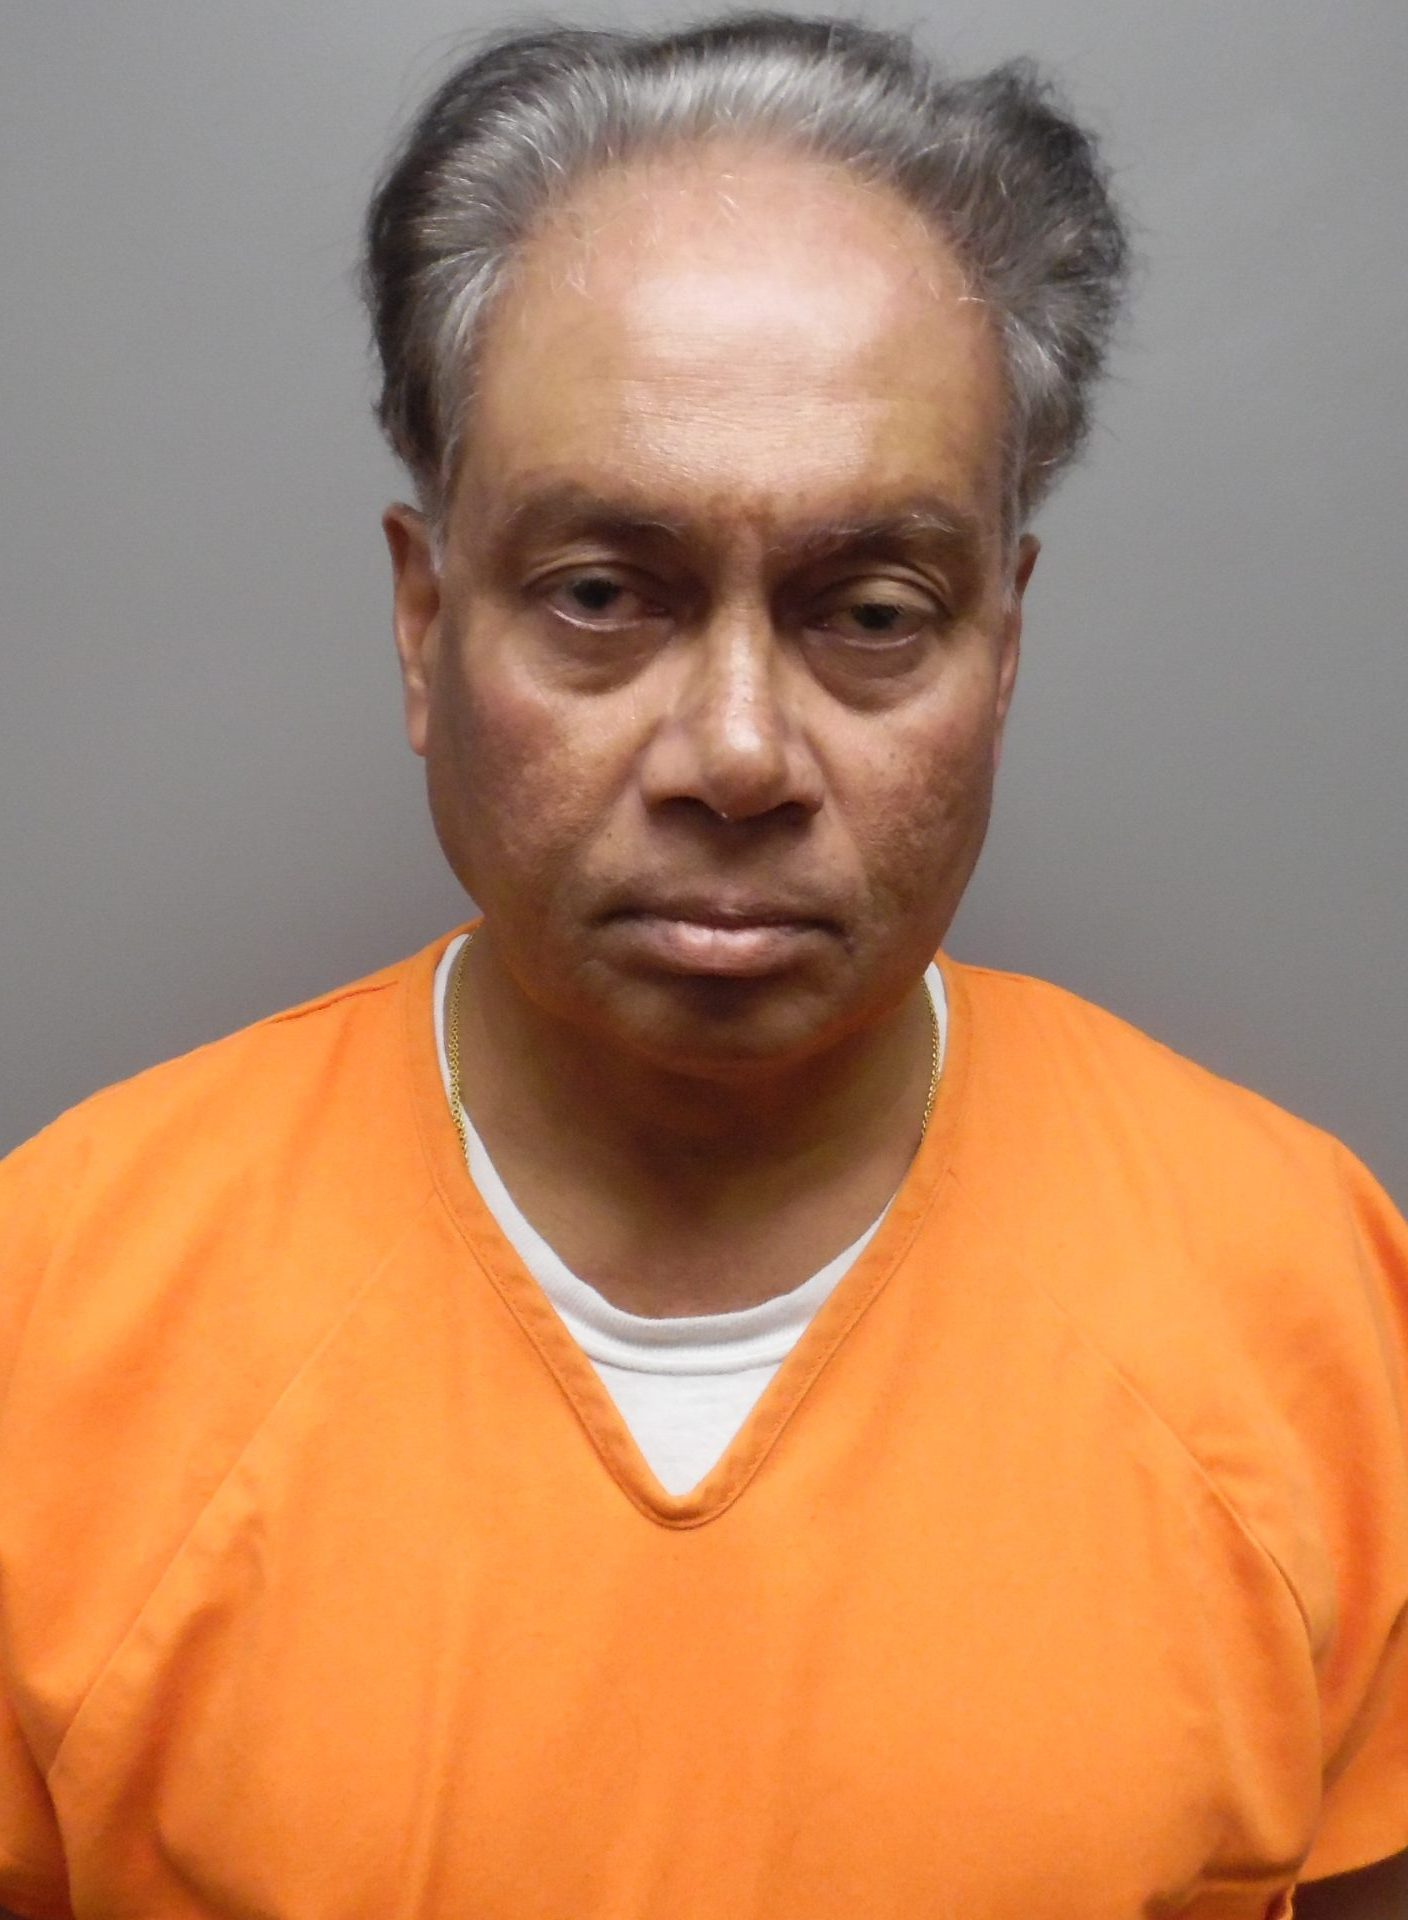 Central Nebraska priest charged with sex assault of woman